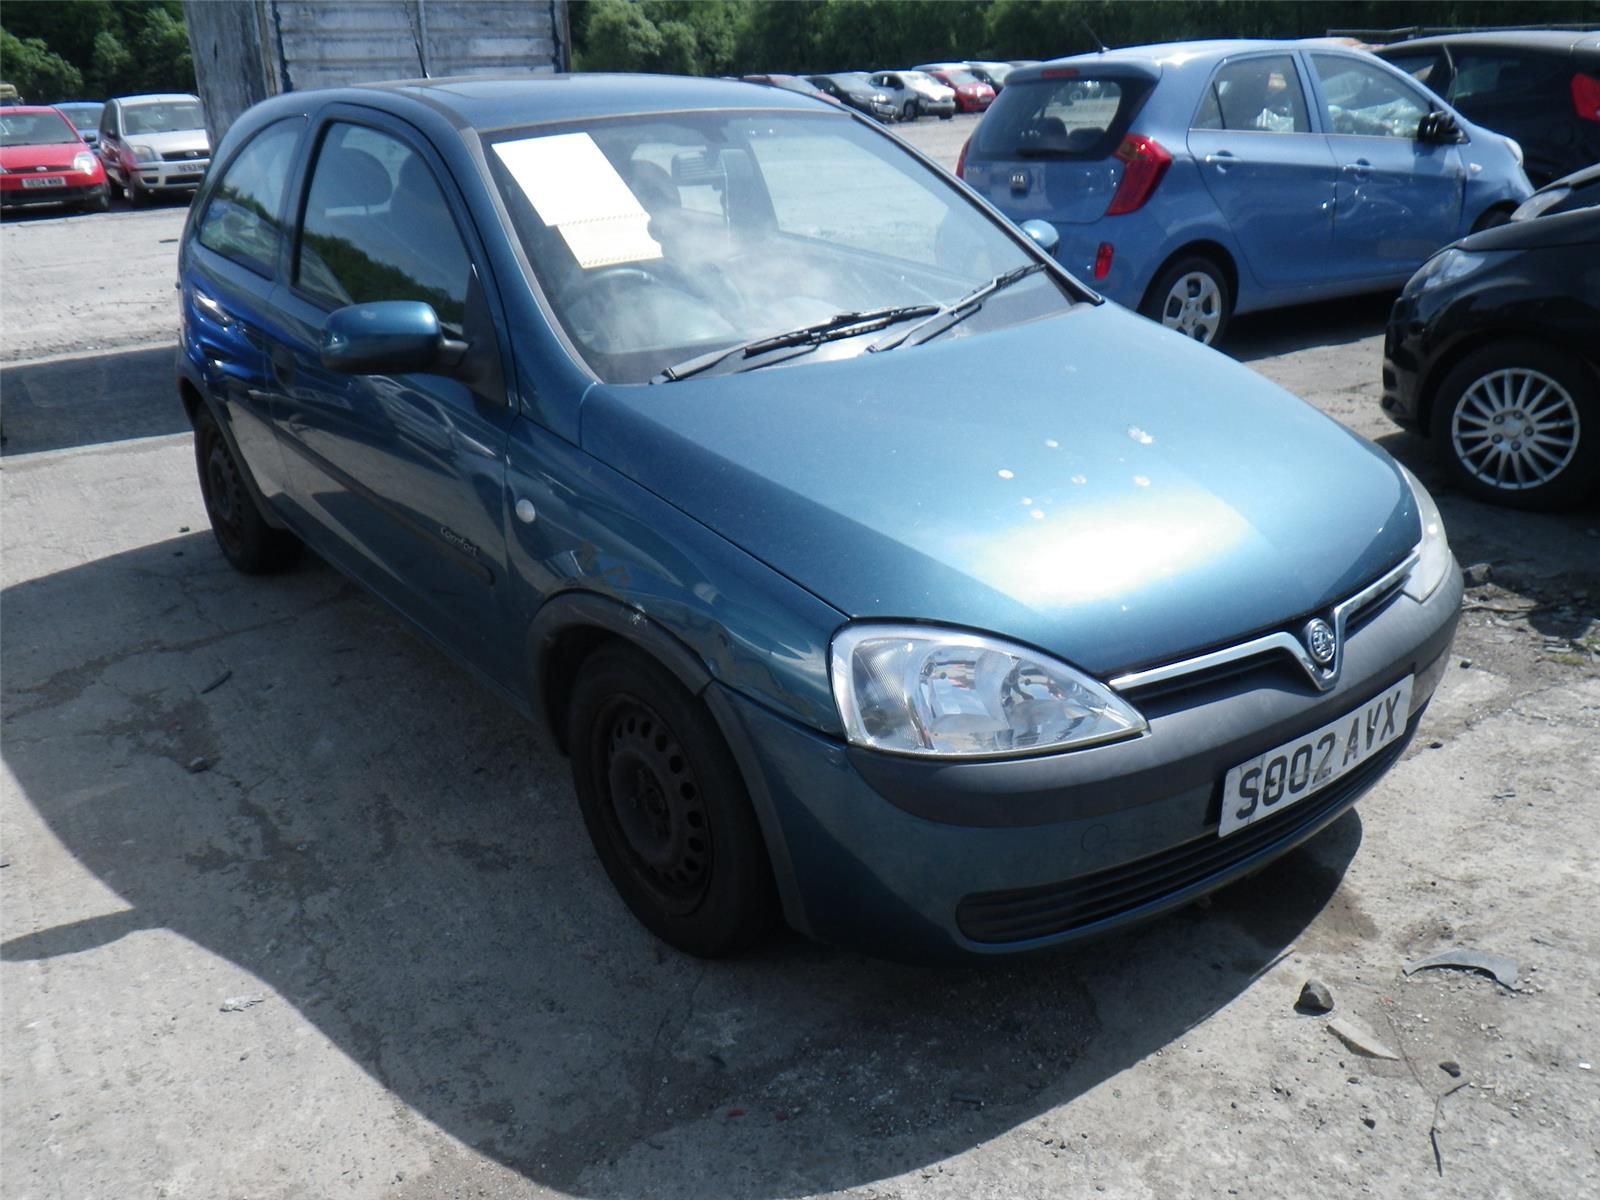 vauxhall corsa manual 2006 sample user manual u2022 rh userguideme today Vauxhall Corsa Stanced 2000 Vauxhall Astra